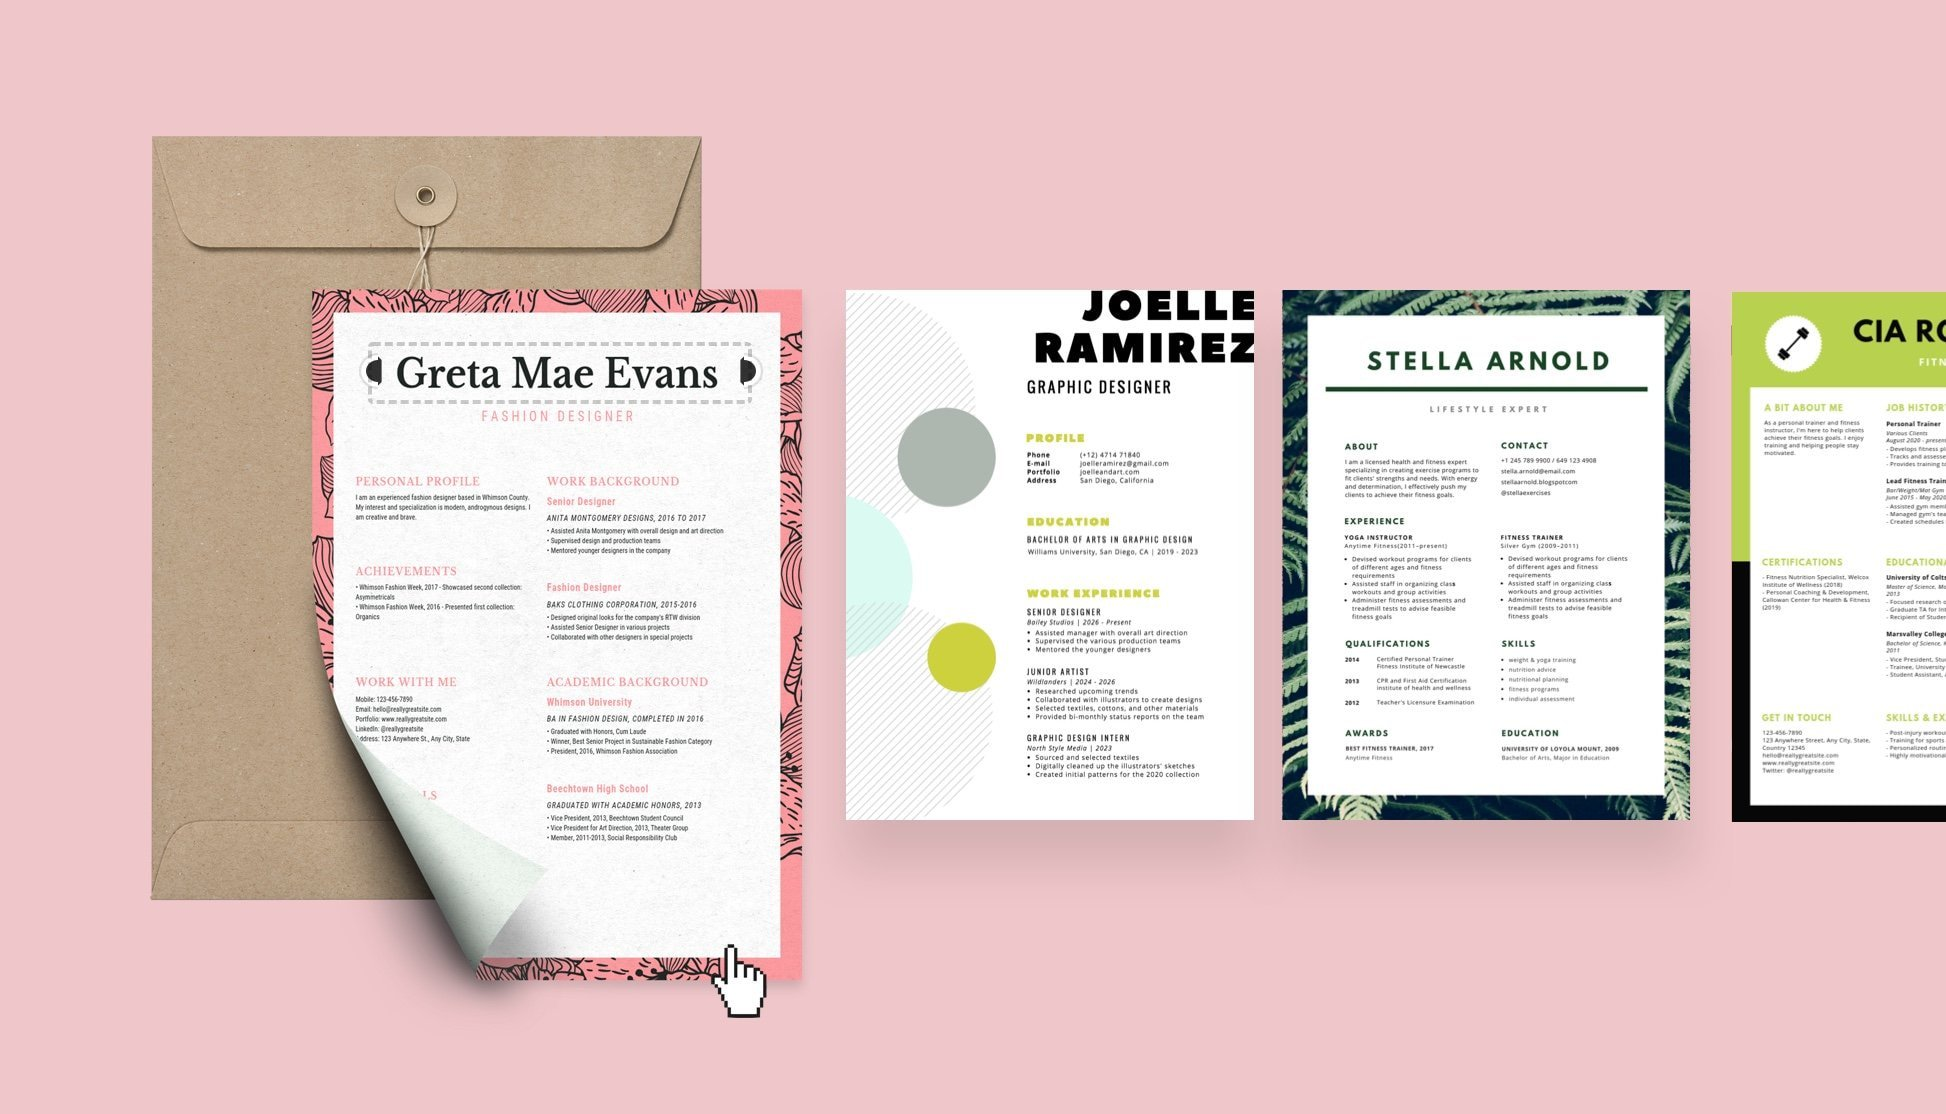 free resume builder design custom in canva quick sap fico entry level python projects for Resume Quick Resume Builder Free